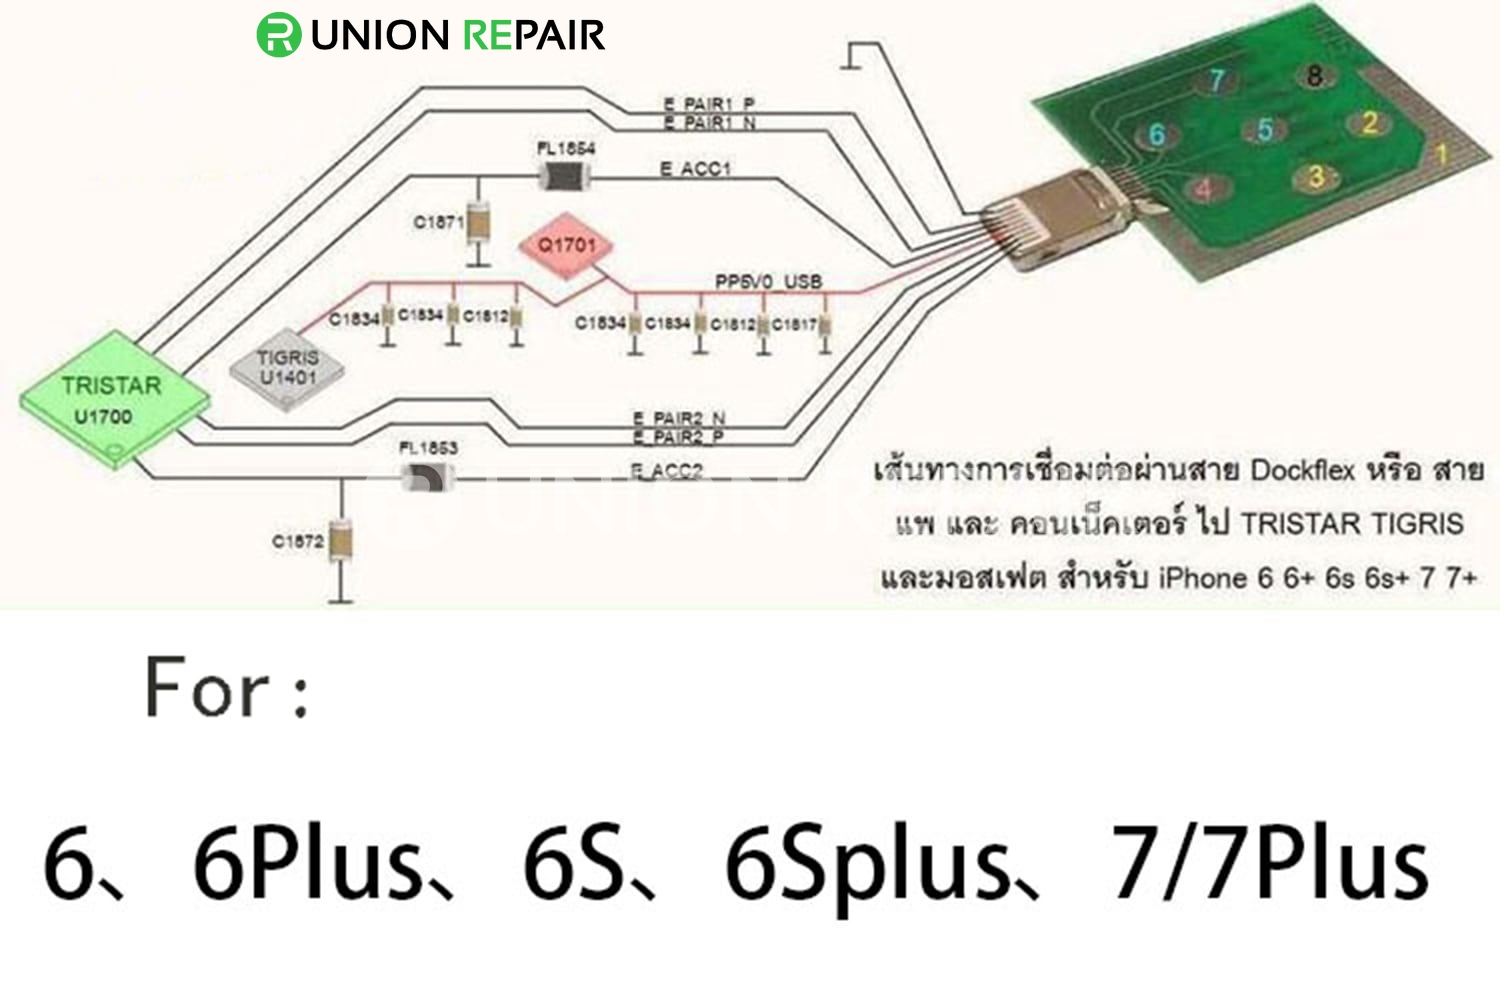 small resolution of boat dock wiring diagram wiring library